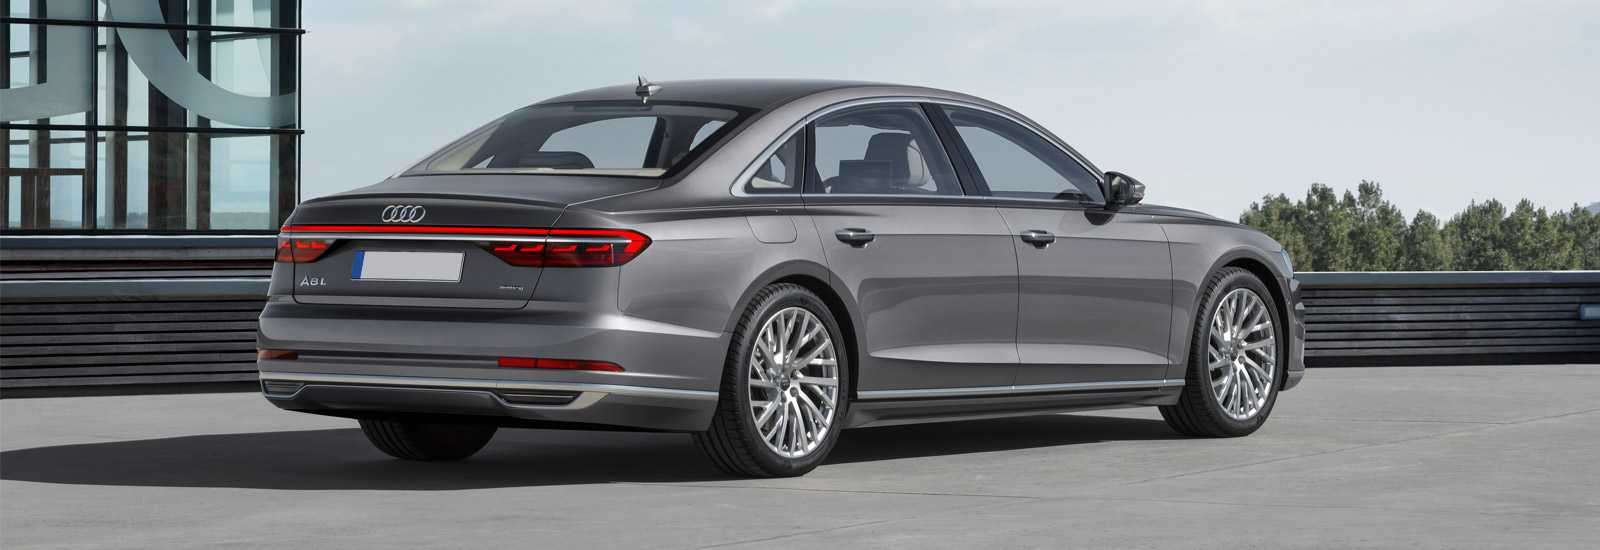 2018 audi 8. simple 2018 the new car will also be offered in longwheelbase a8l form and 2018 audi 8 t